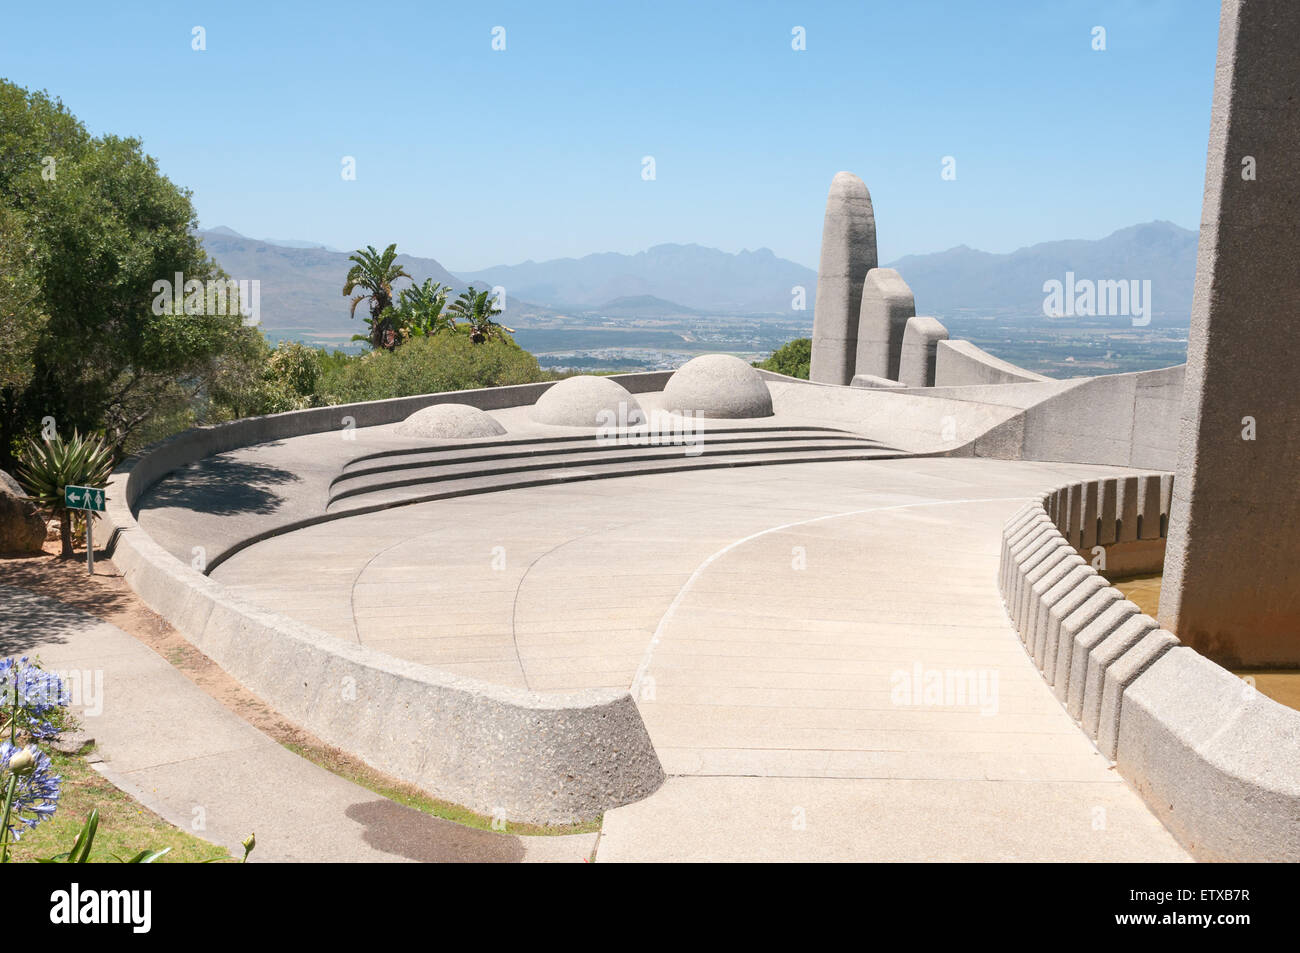 Monument commemorating the development of the Afrikaans language in Paarl, South Africa - Stock Image